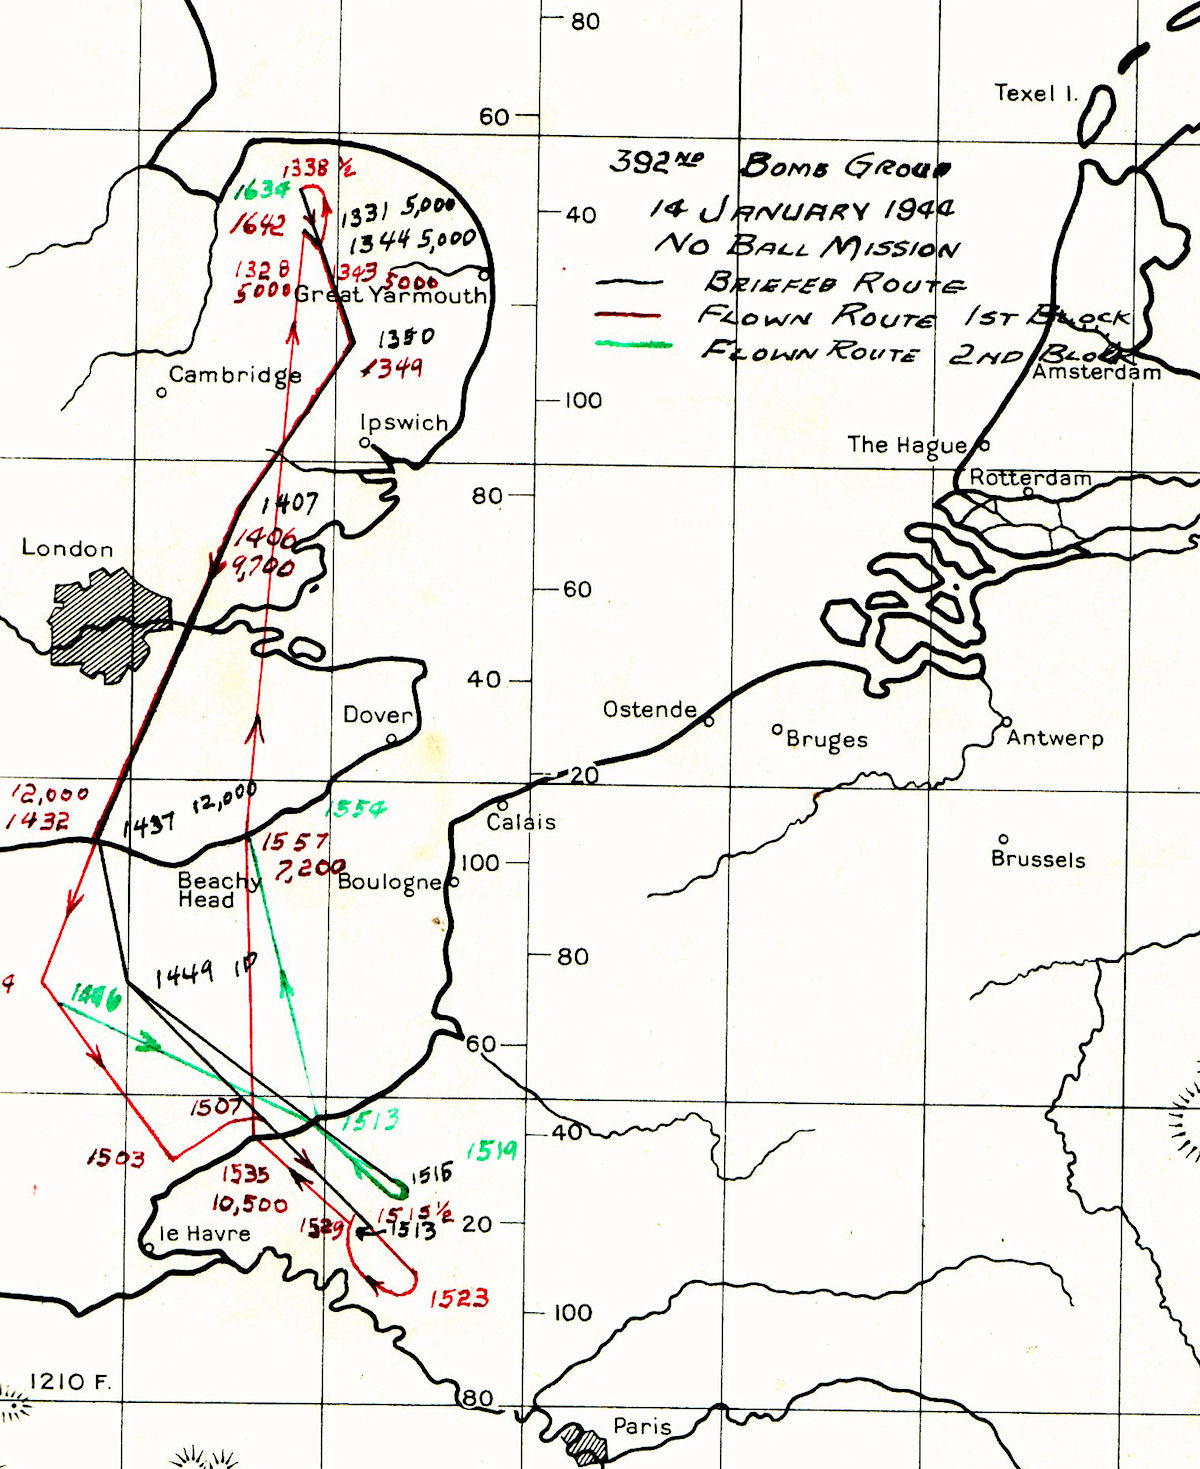 14Jan44 route map